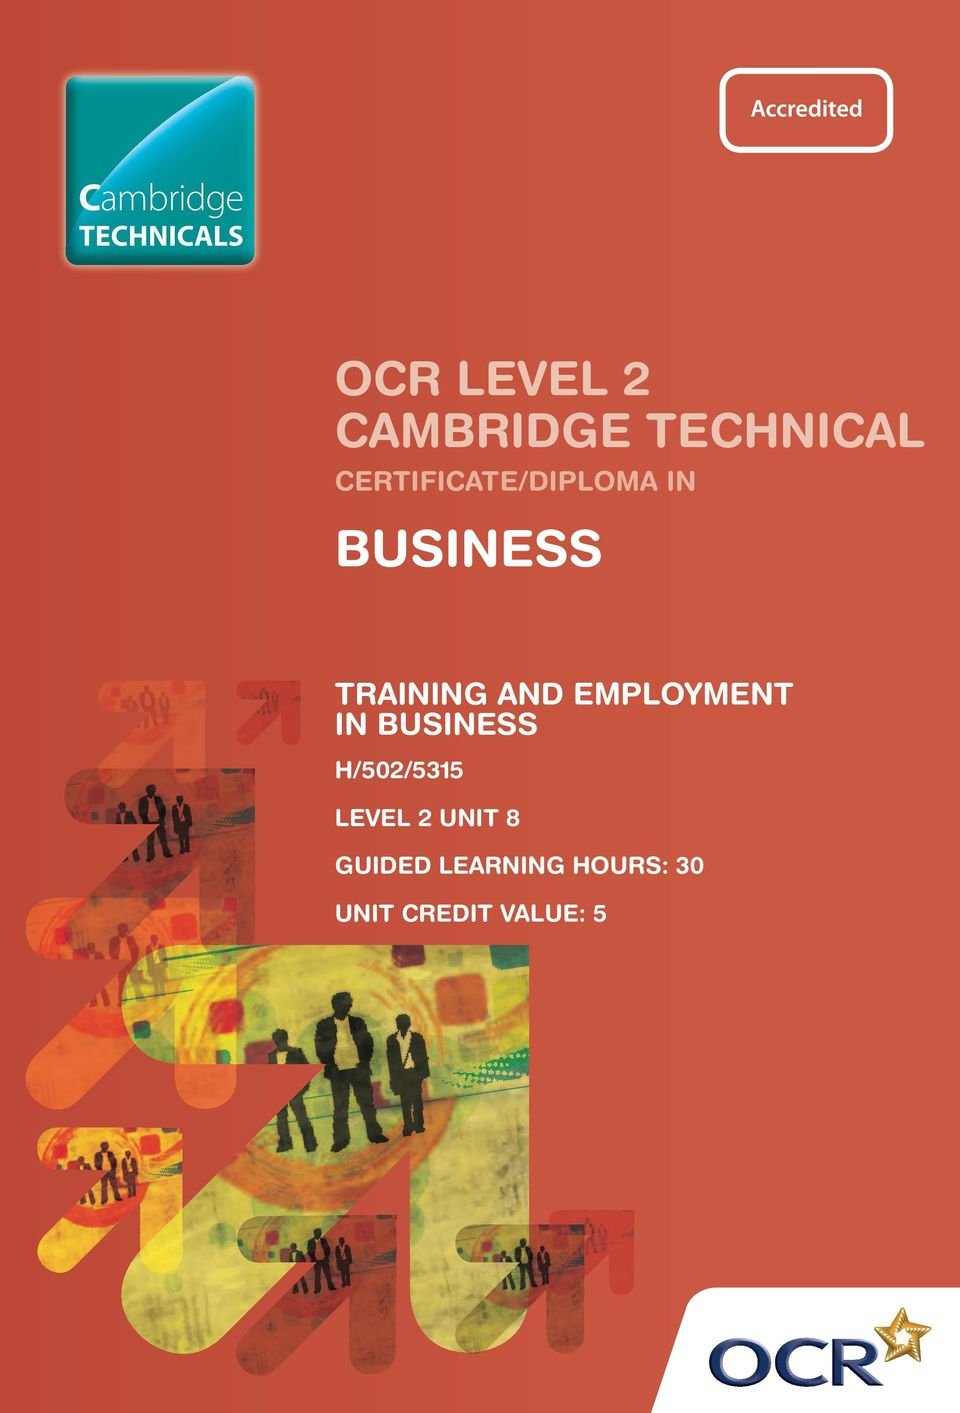 TRAINING AND EMPLOYMENT IN BUSINESS H/502/5315